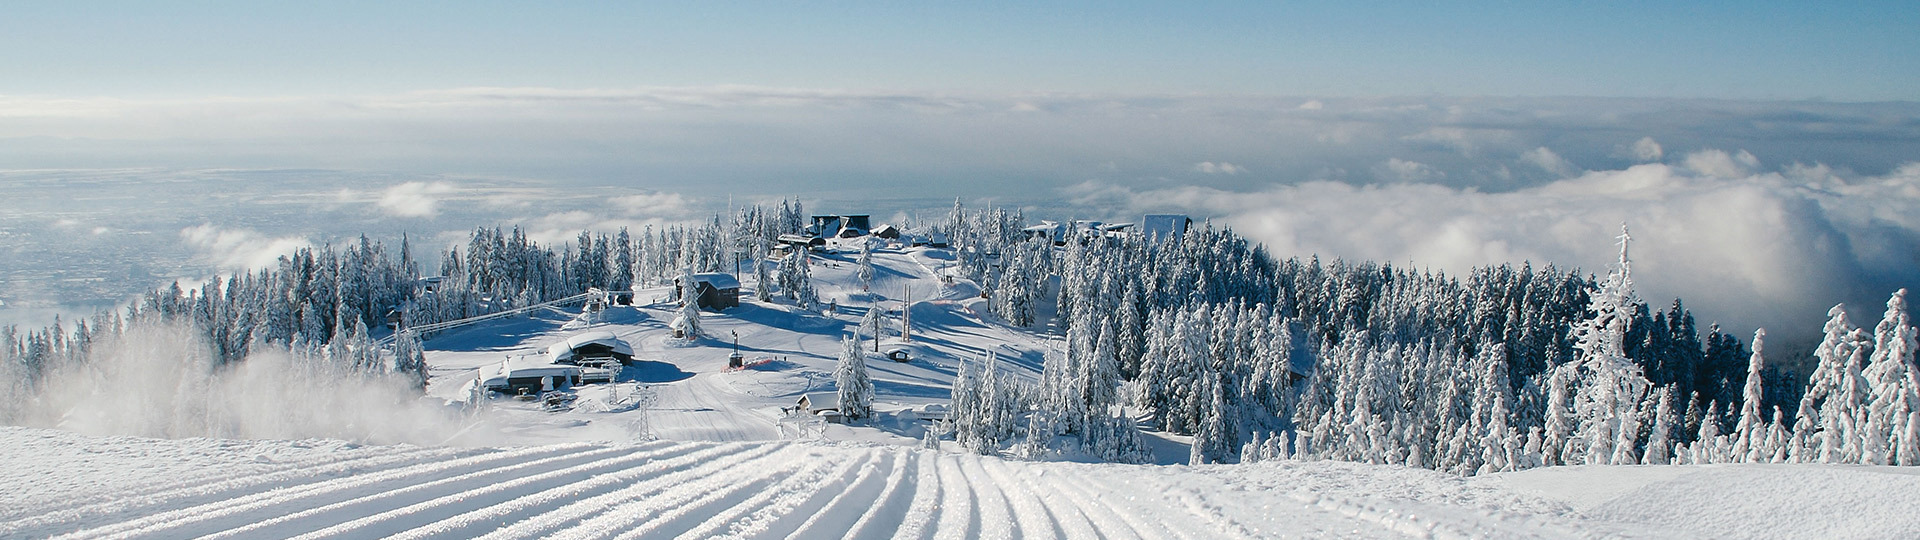 View from Peak in winter